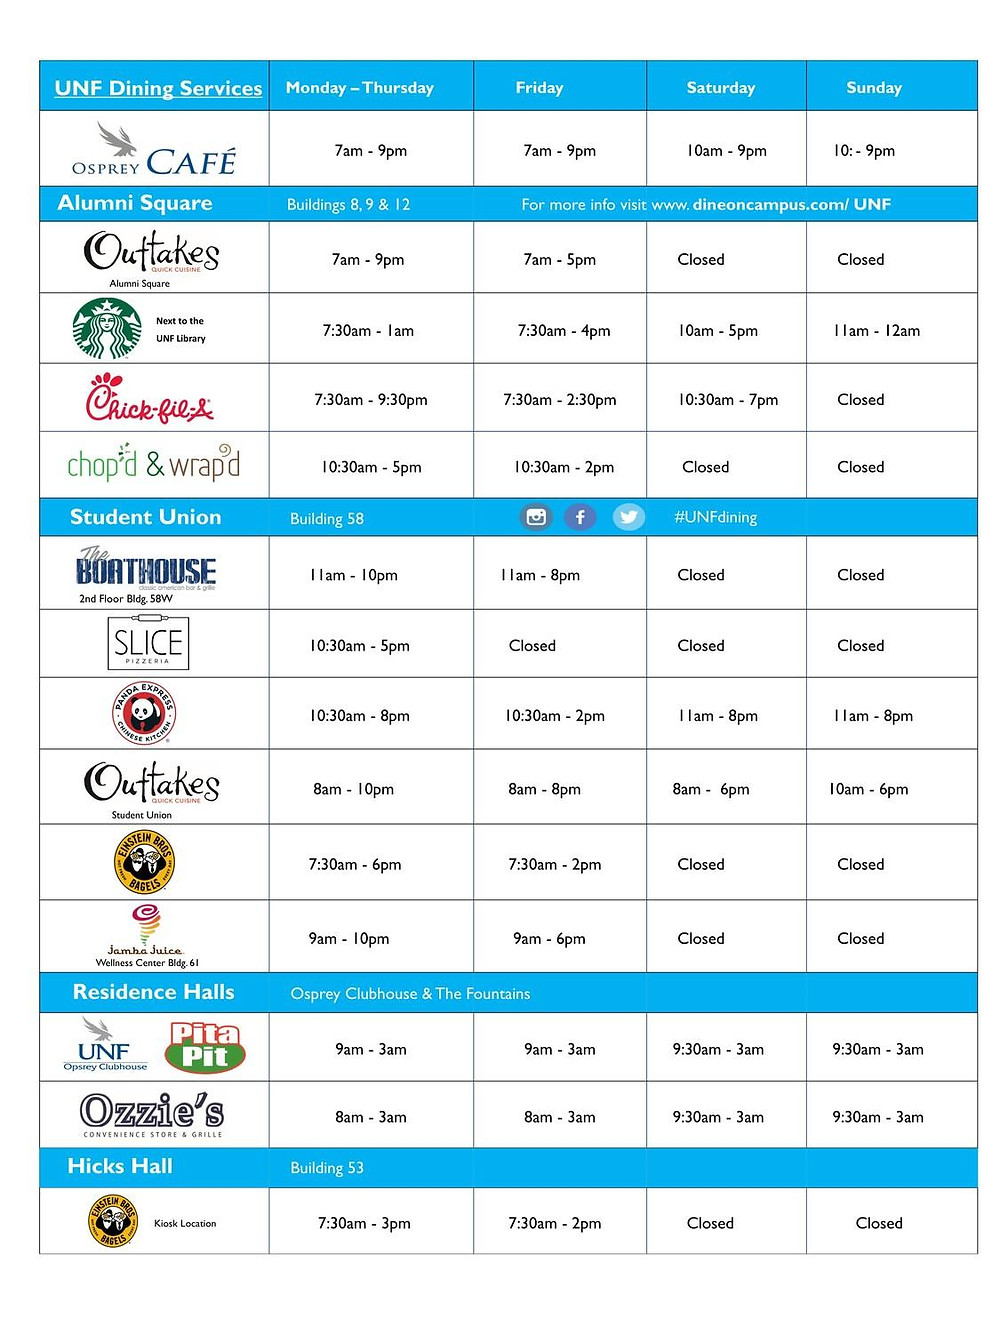 The UNF Dining locations with their hours throughout the week.